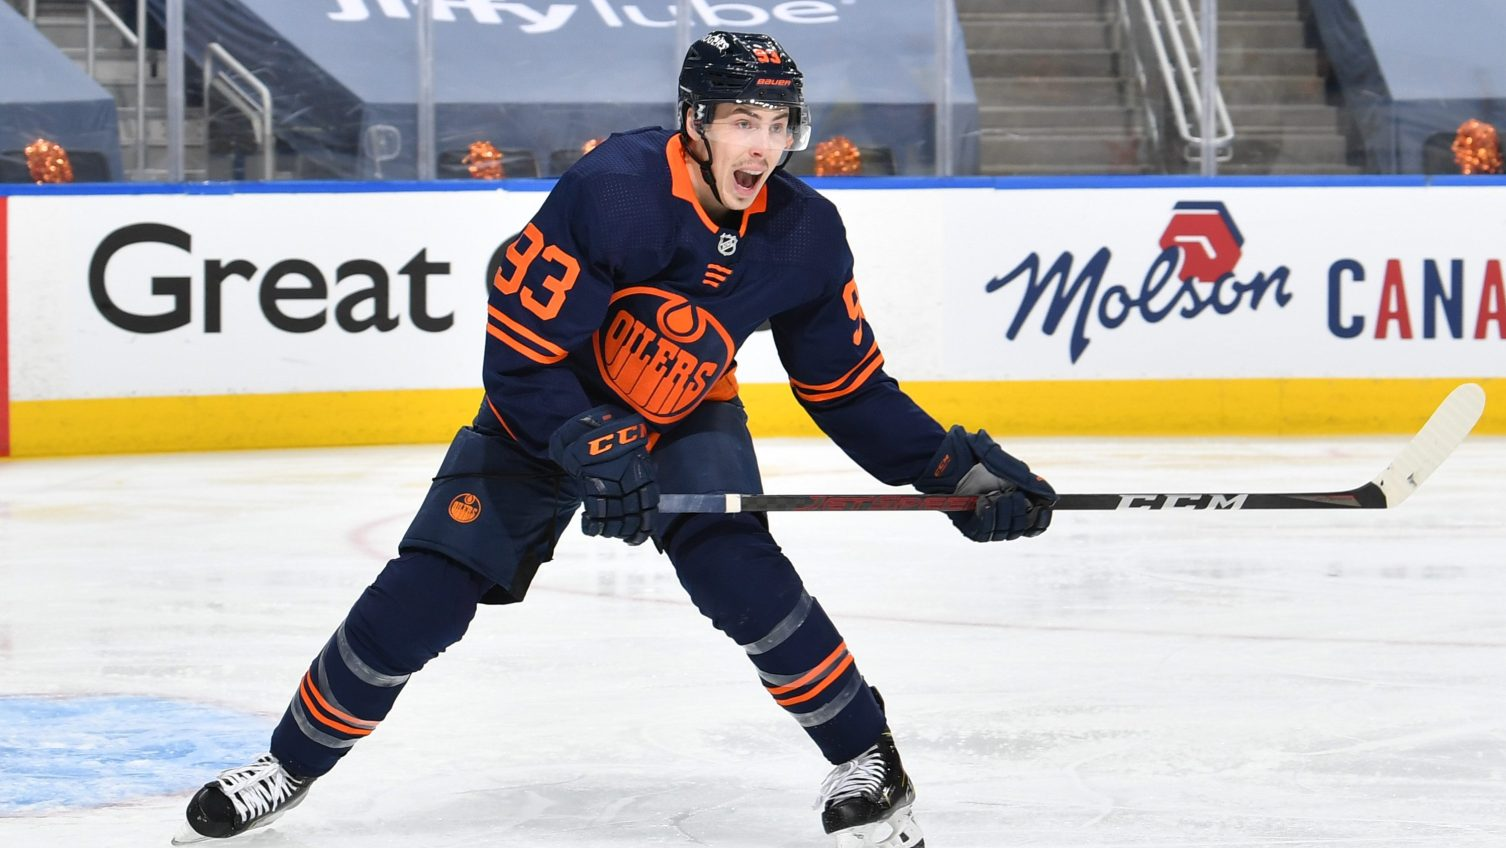 Ryan Nugent-Hopkins, Oilers agree to 8-year, $41M extension